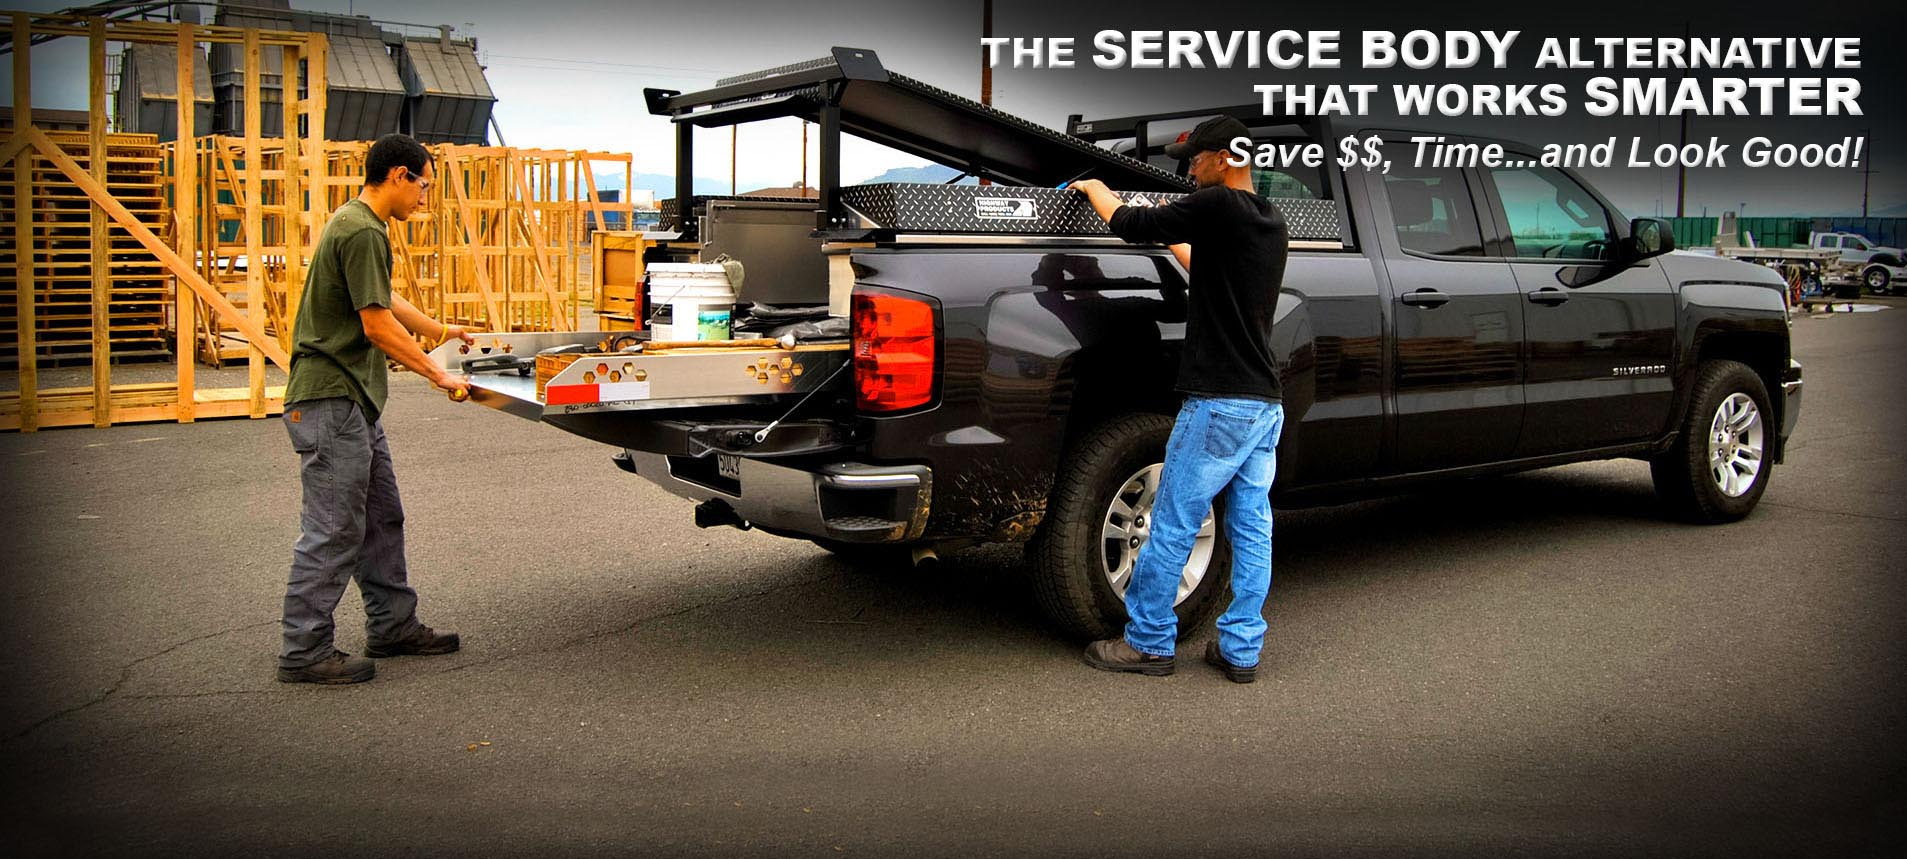 The Highway Products Pickup Pack is the service body alternative! Smarter, lighter, and cheaper!